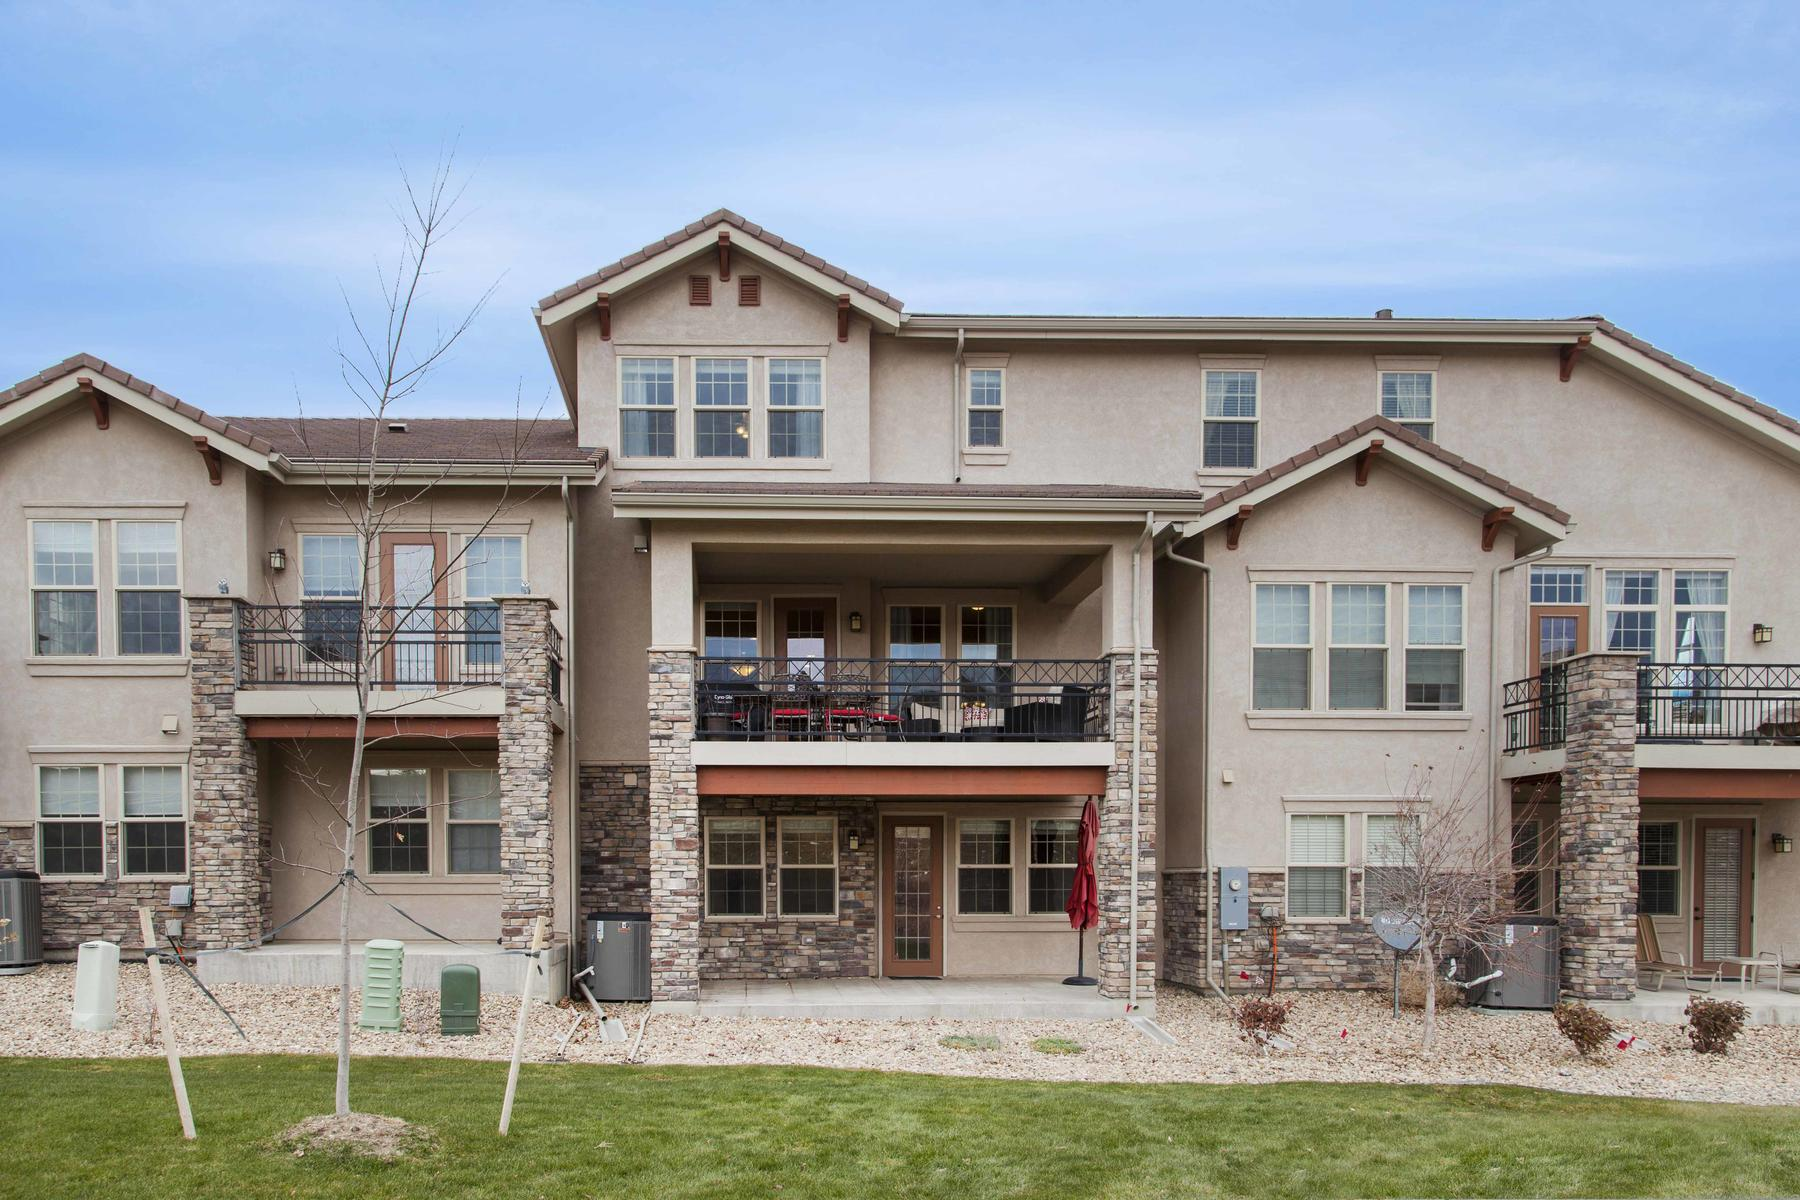 Additional photo for property listing at WOW~VIEWS BACKING UP TO OPEN SPACE! 2982 Casalon Cir Superior, Colorado 80027 United States